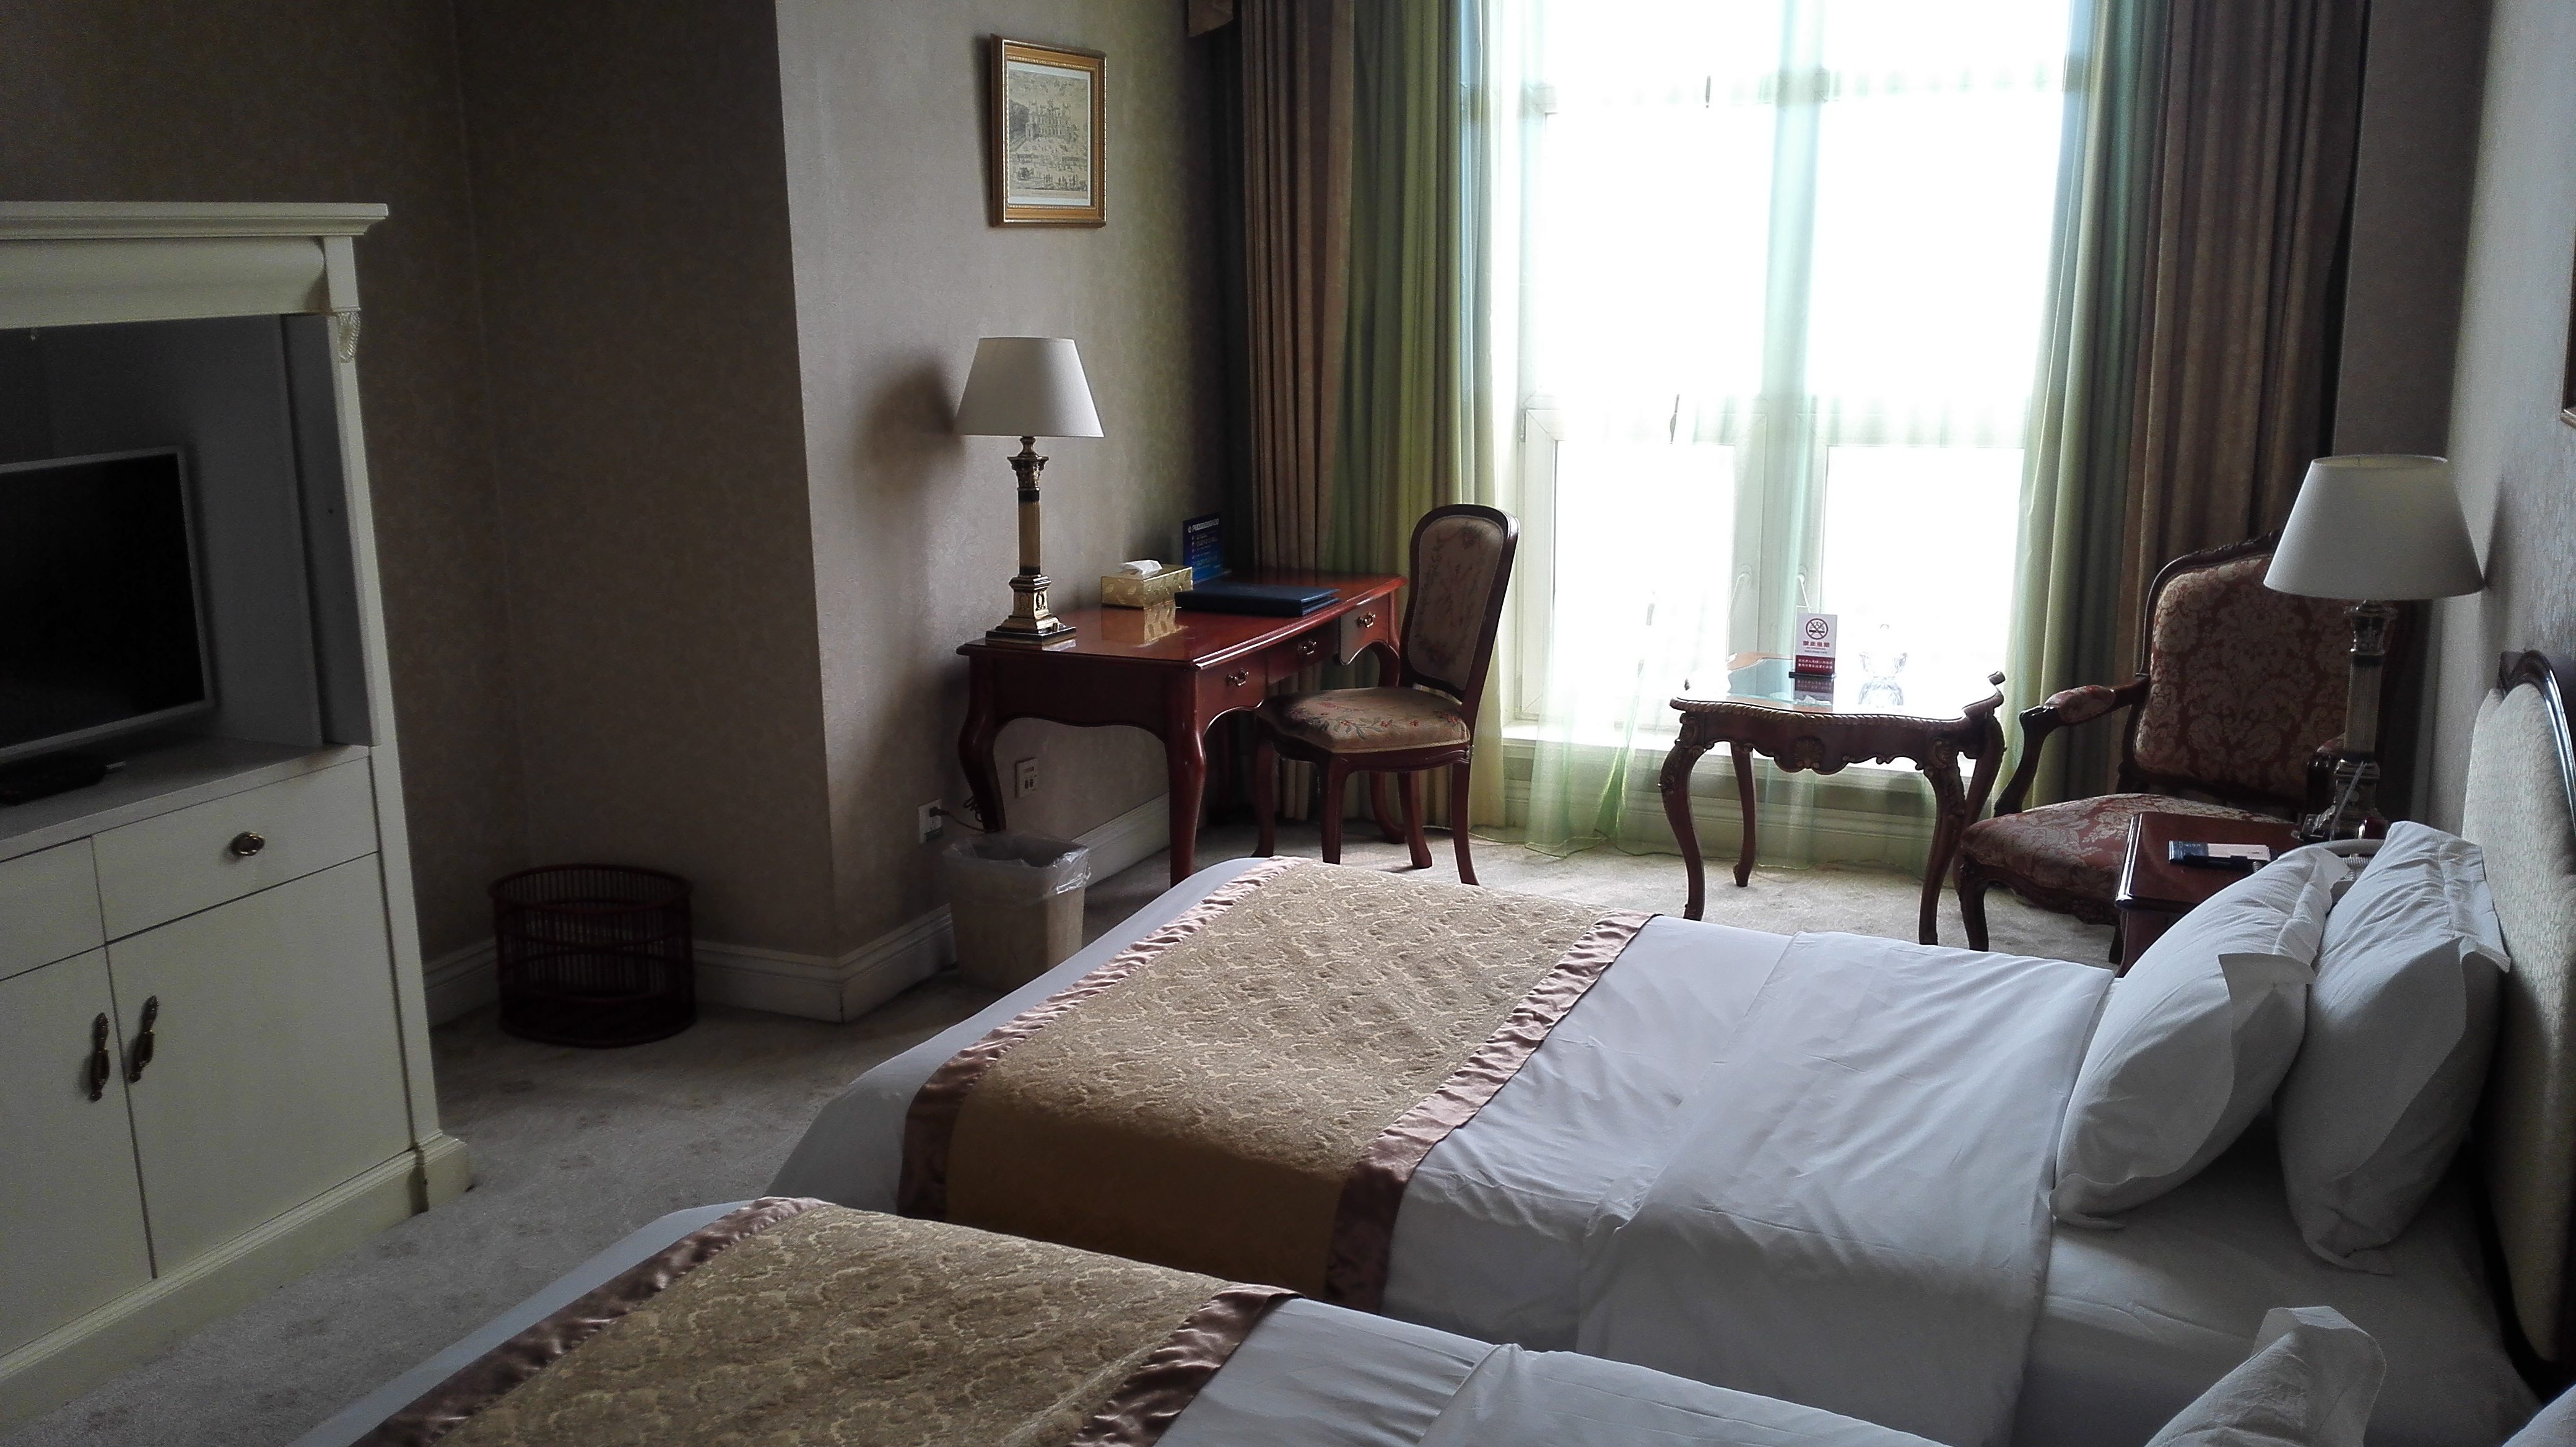 Beijing Chateau Laffitte Hotel (Room pic 1)